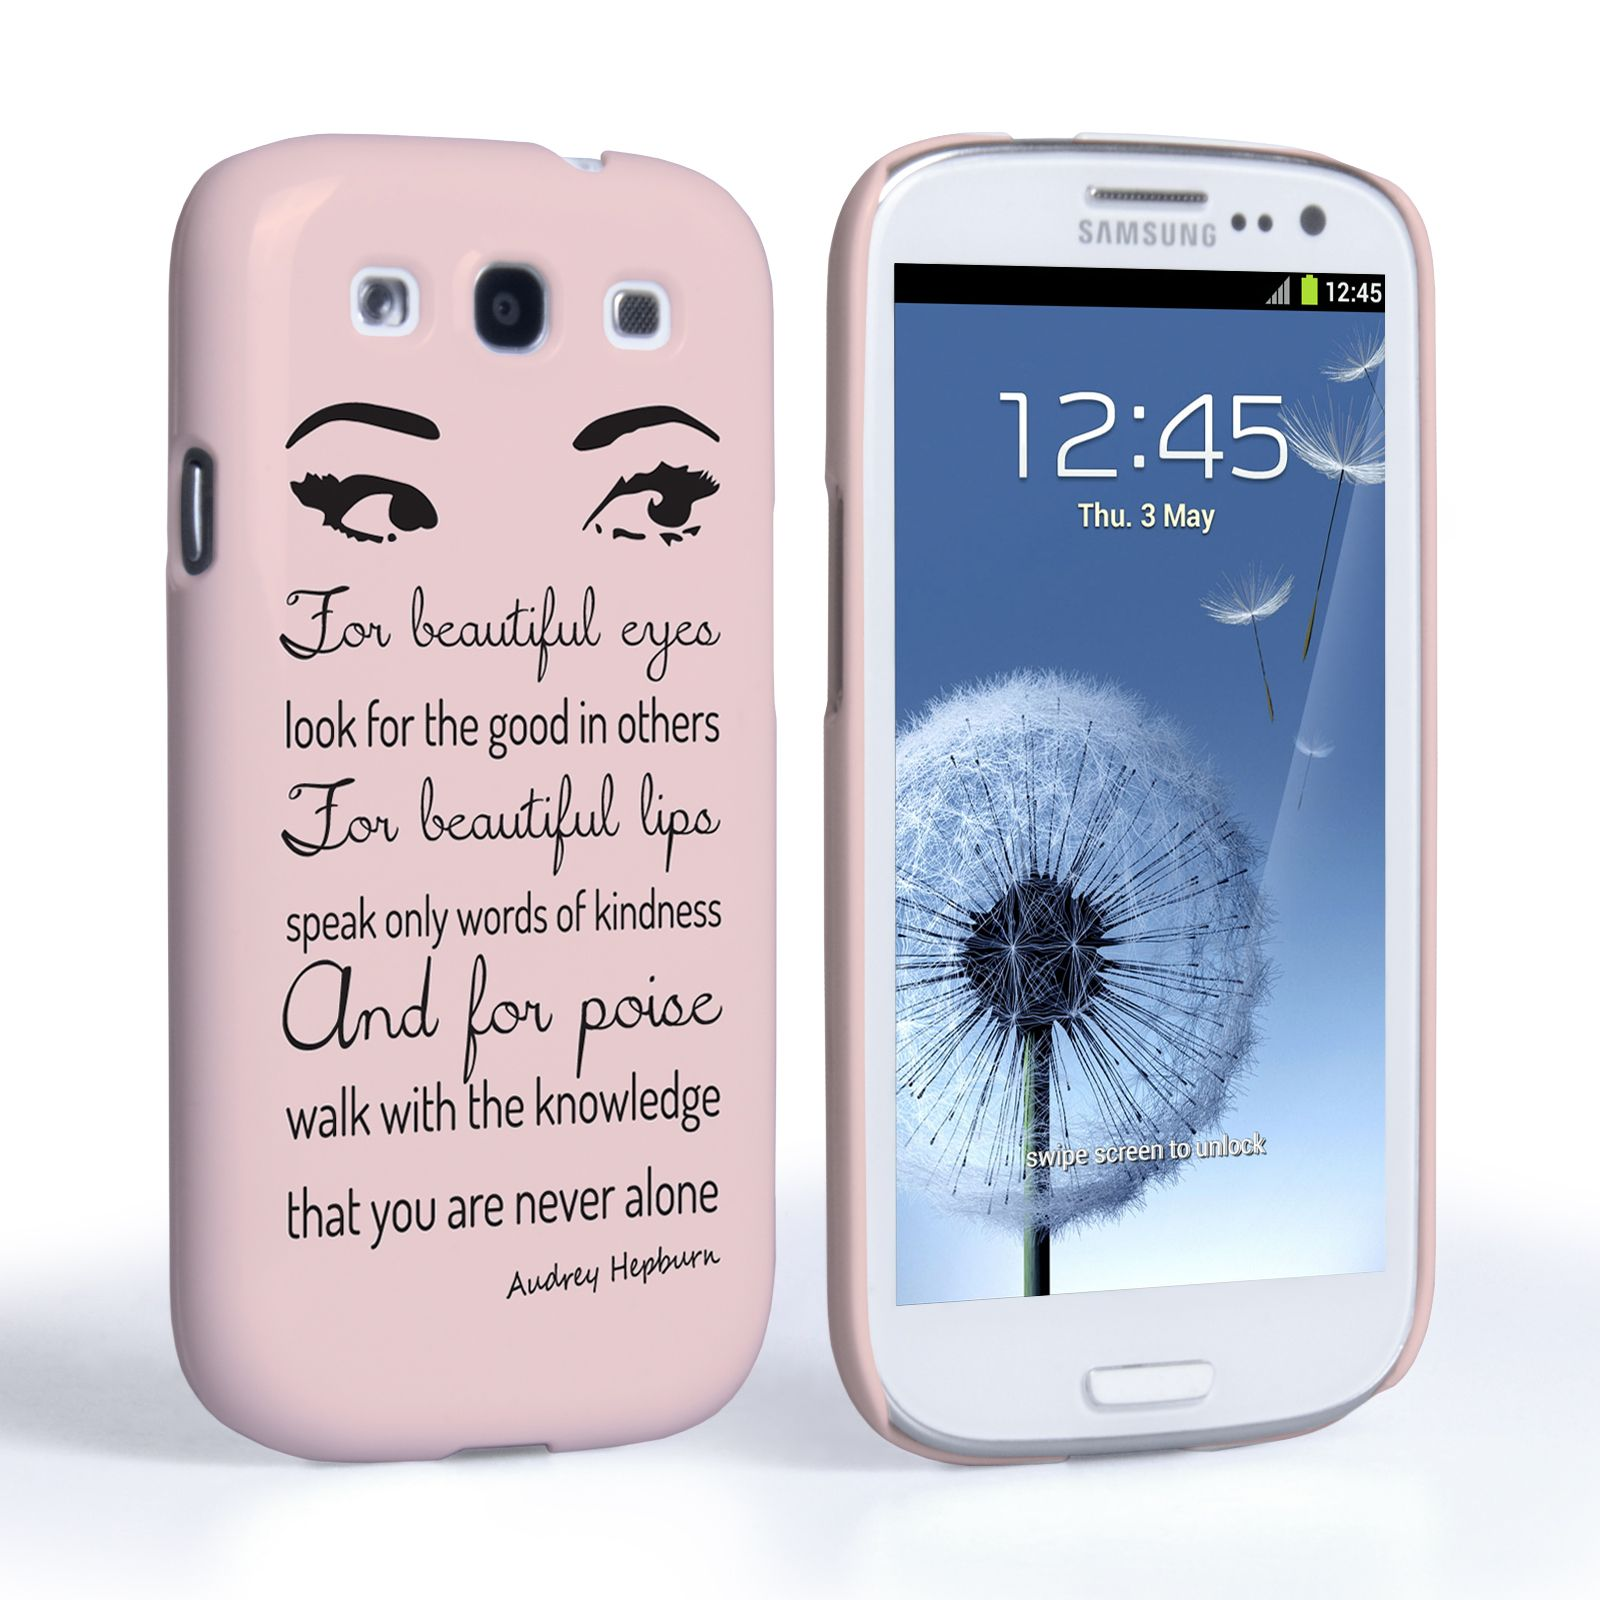 Samsung Quote Awesome Caseflex Samsung Galaxy S3 Audrey Hepburn 'eyes' Quote Case . Design Ideas